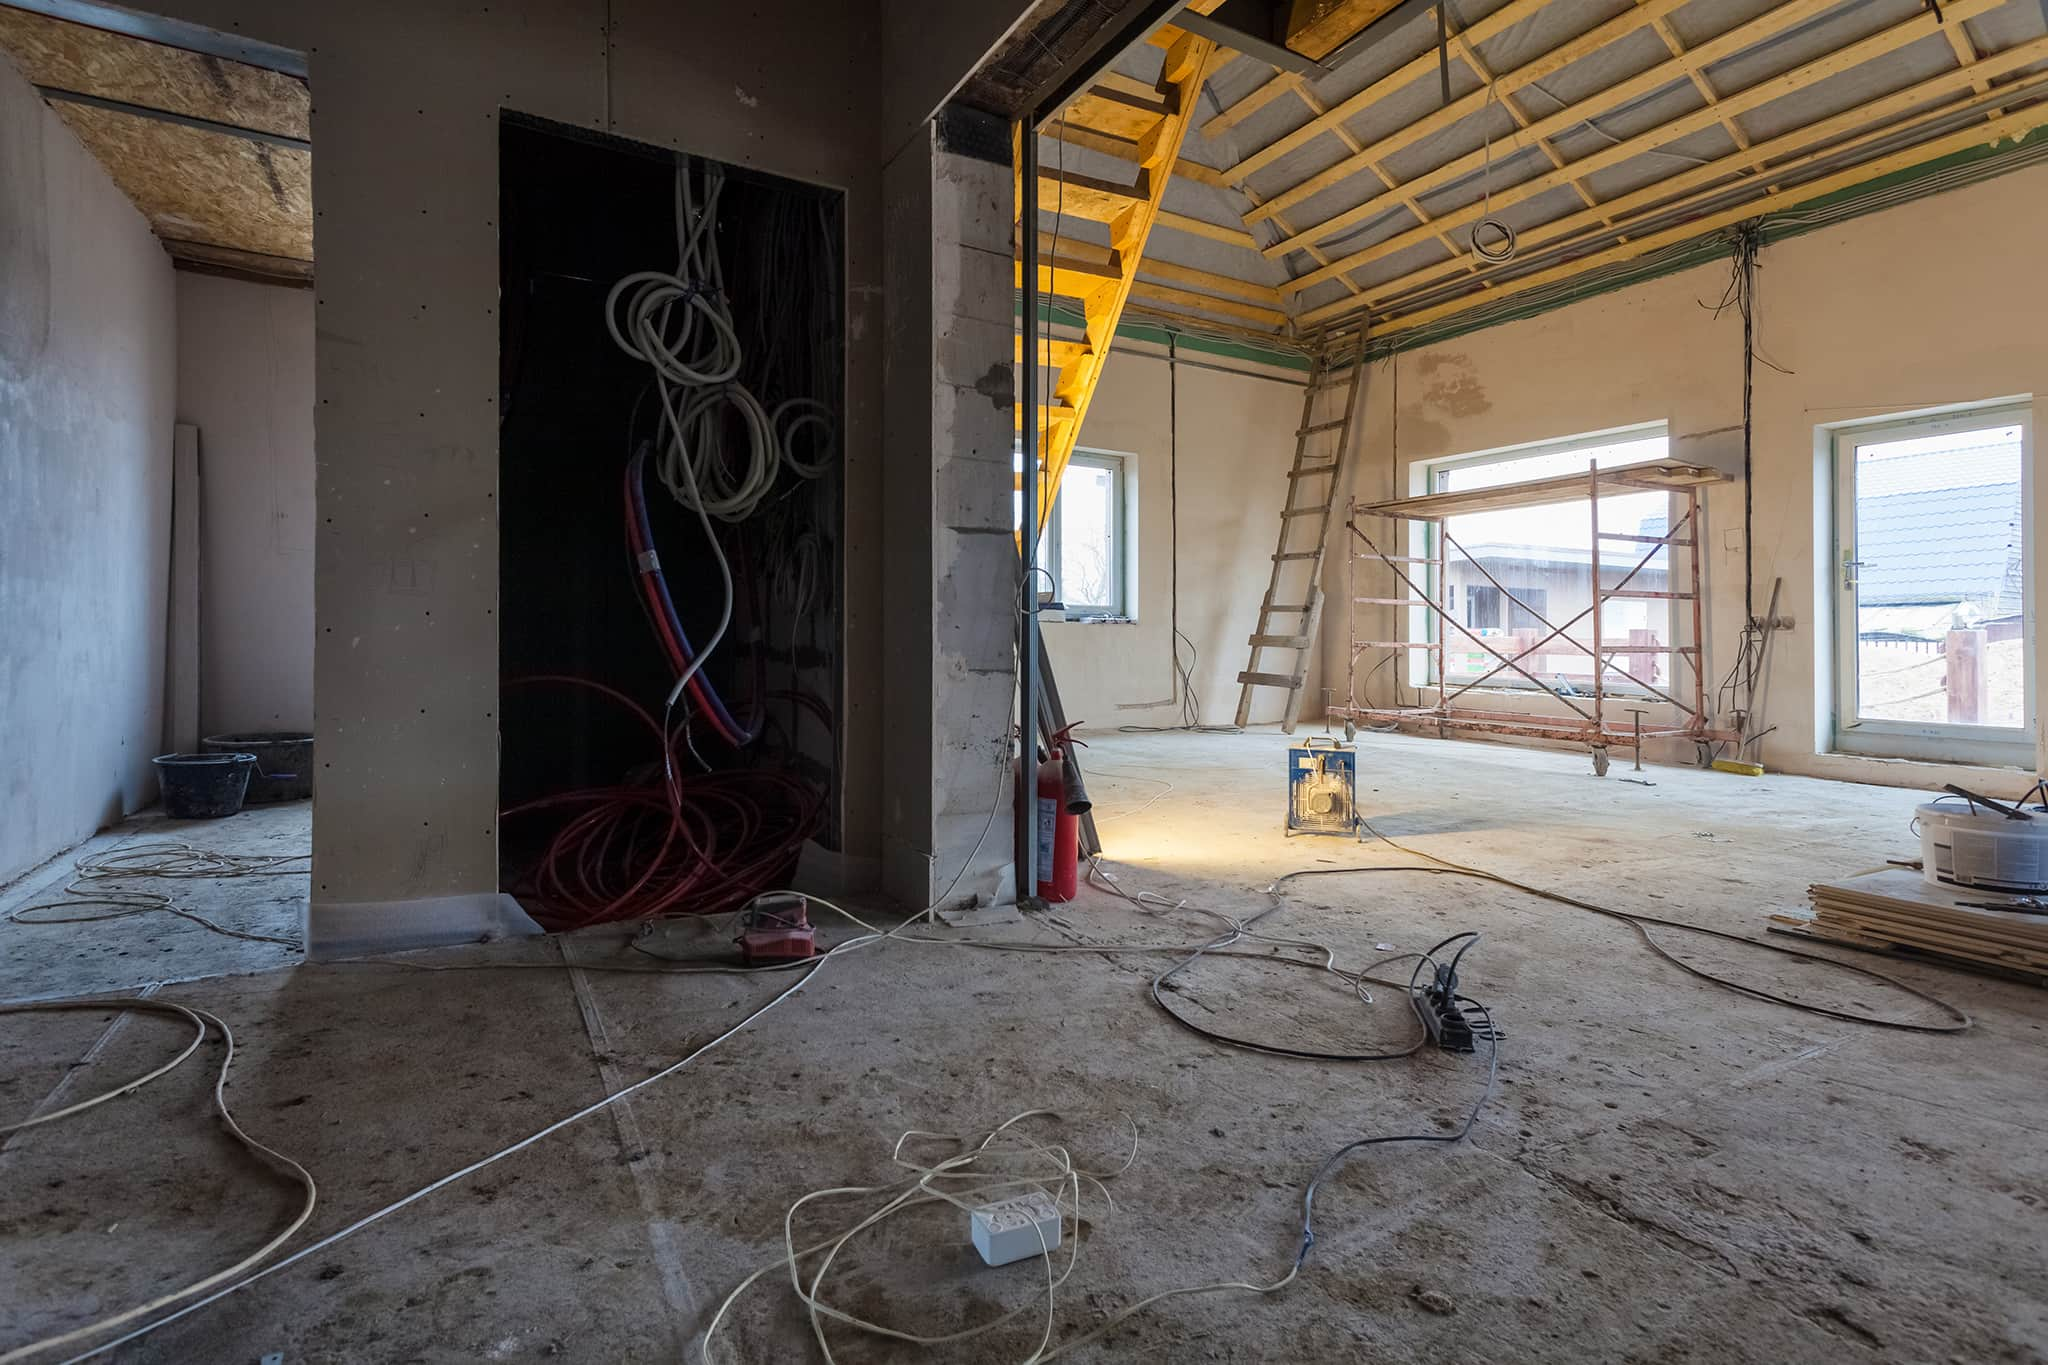 Construction of the interior of a building